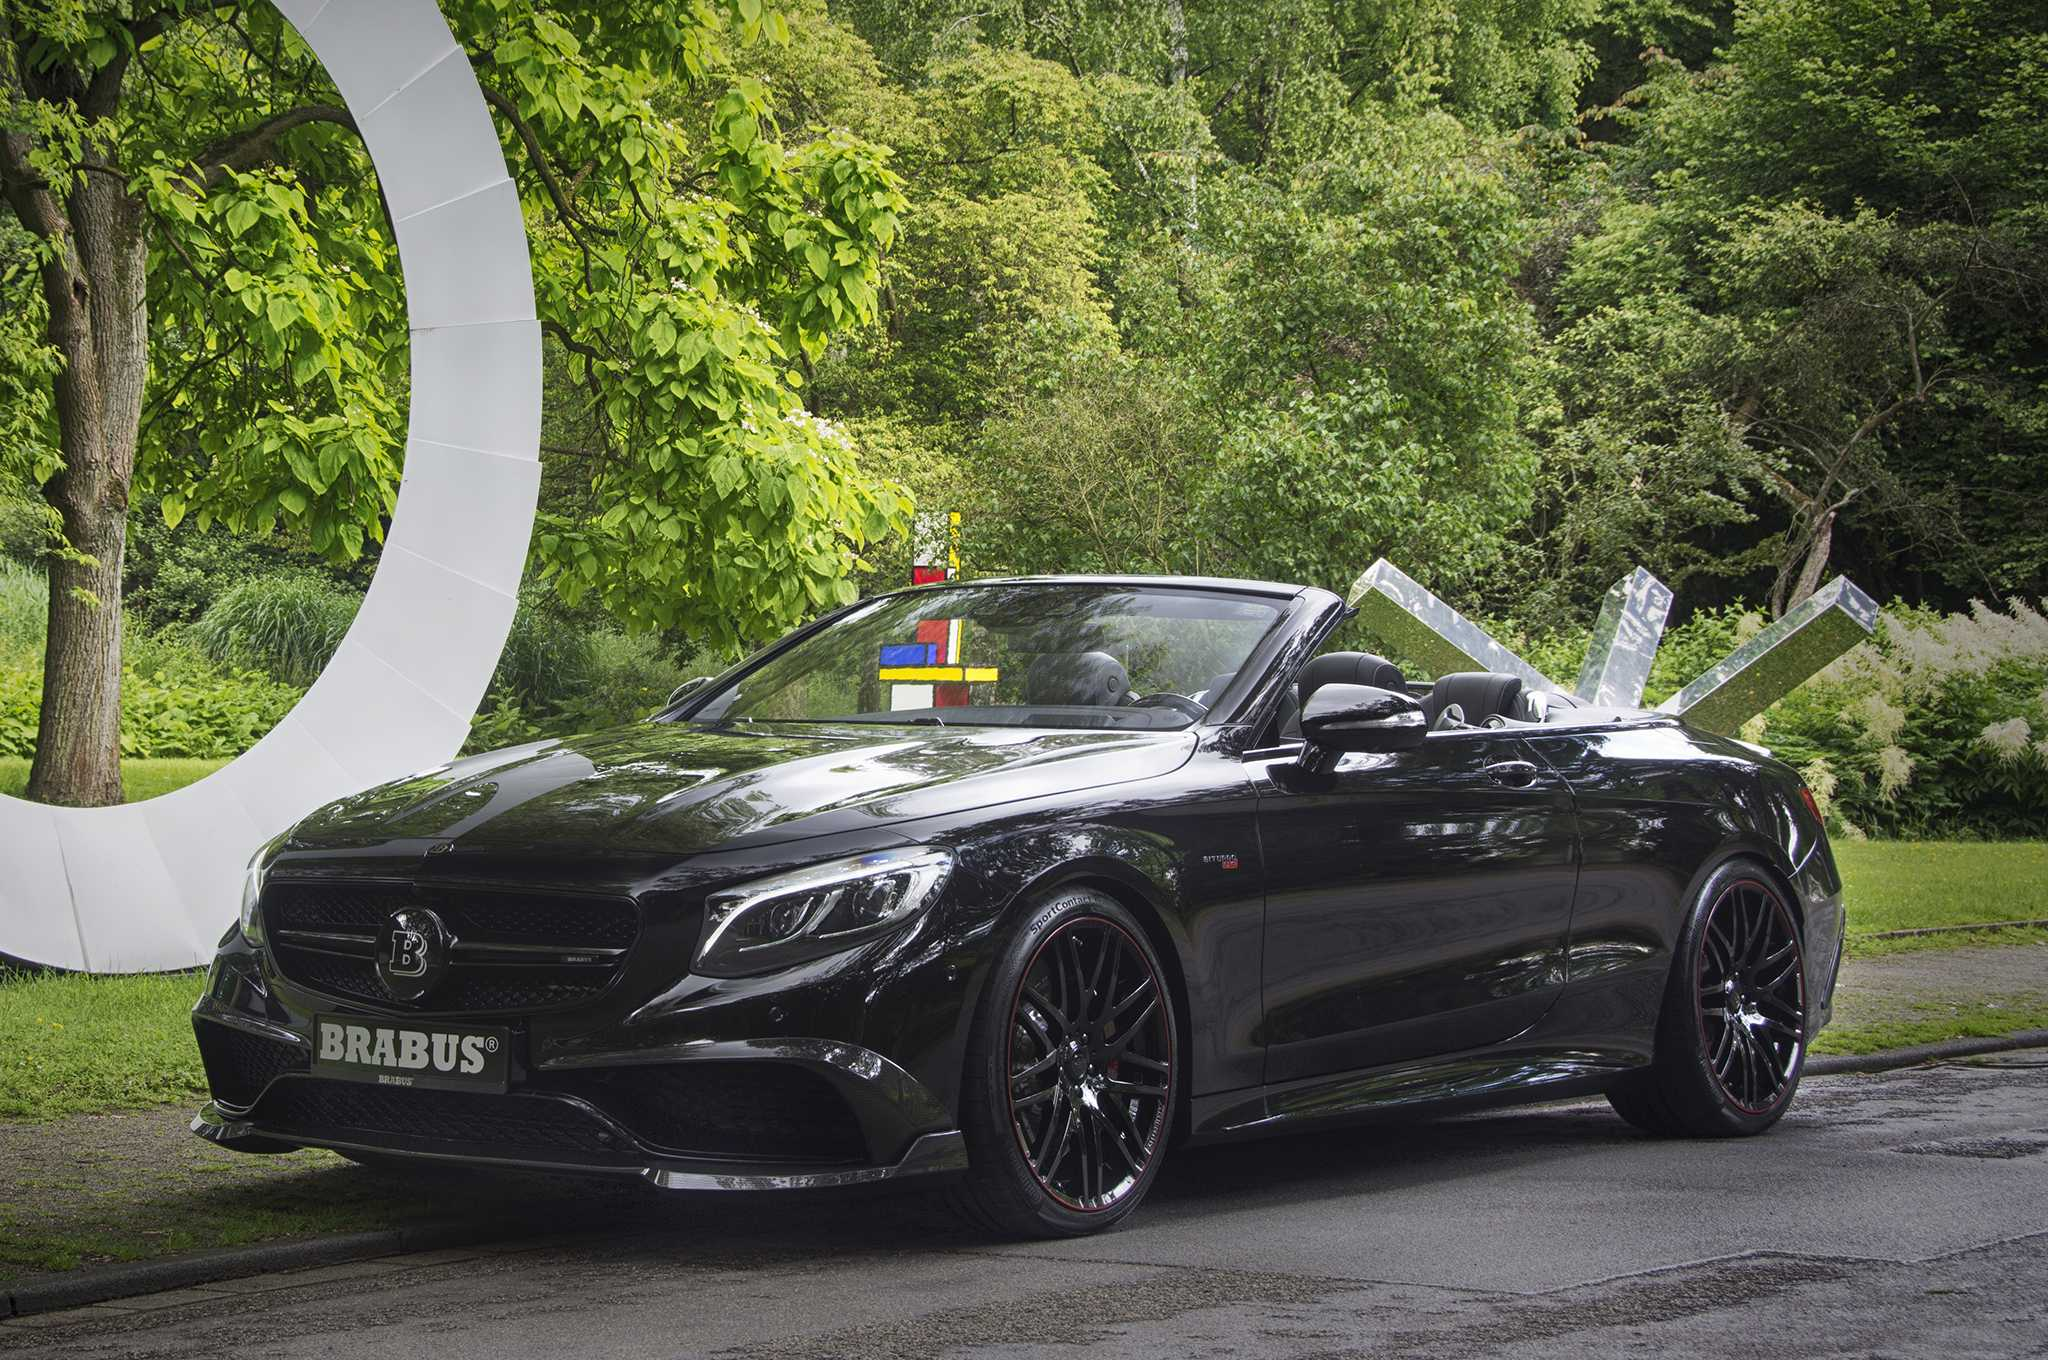 New Brabus is Mercedes AMG S63 Cabriolet With Booster Performance